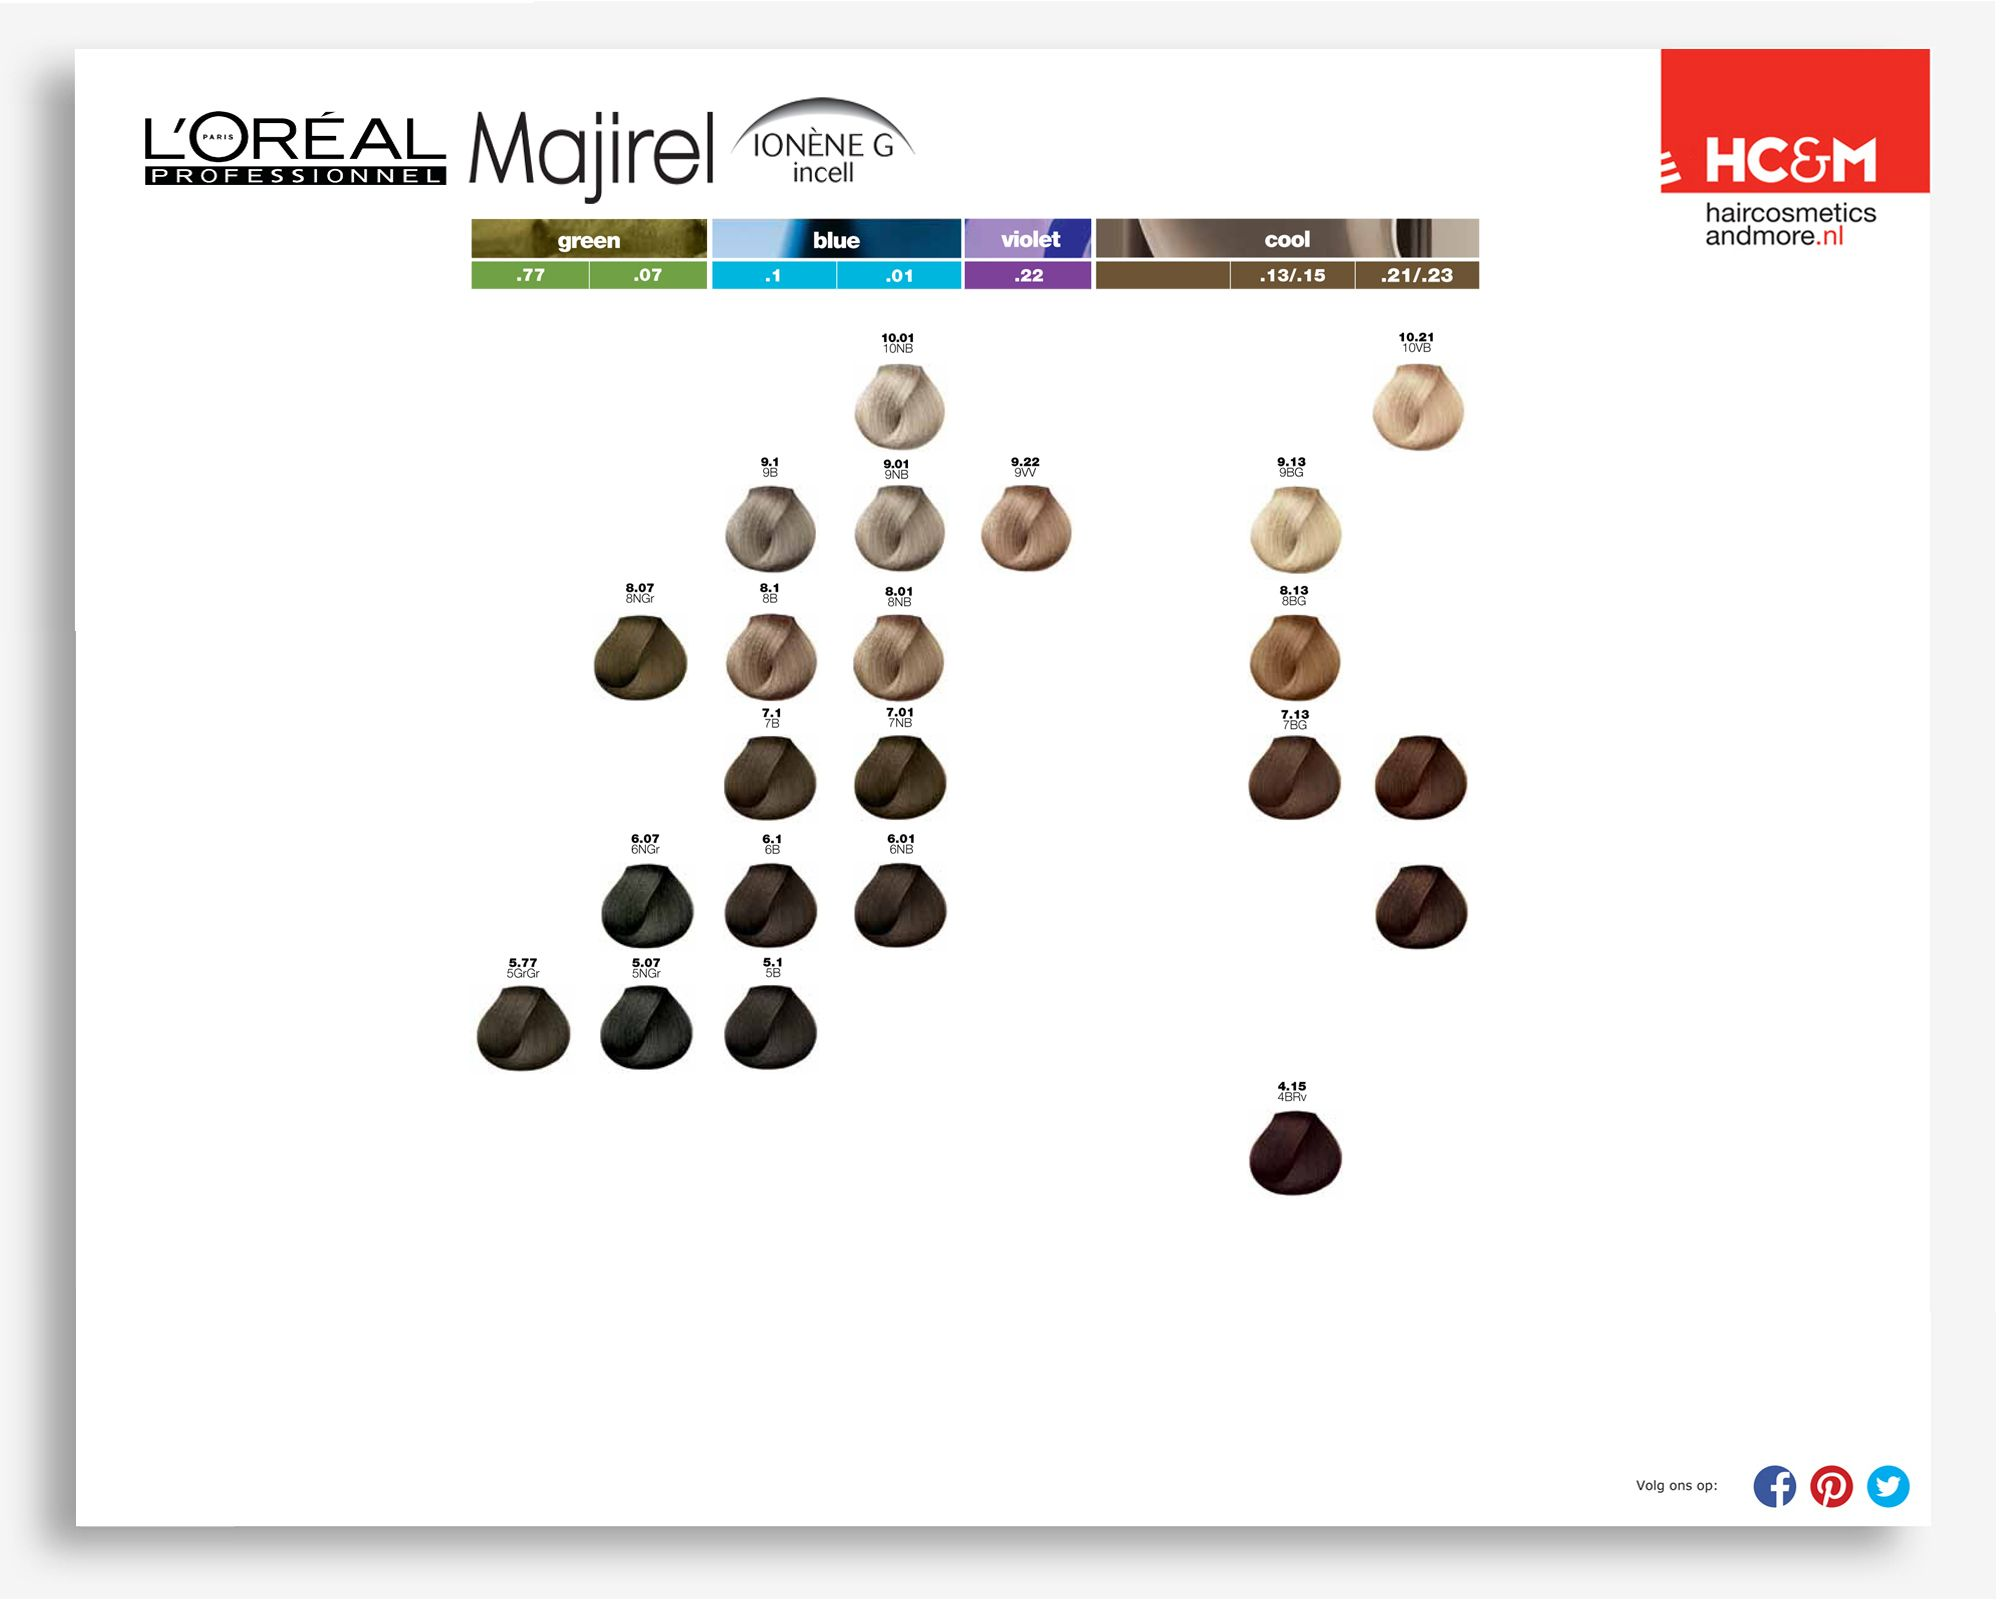 Majirel colour chart - L Or Al Professionel Majirel Green Blue Violet Cool Color Chartsclientvioletgreenliving